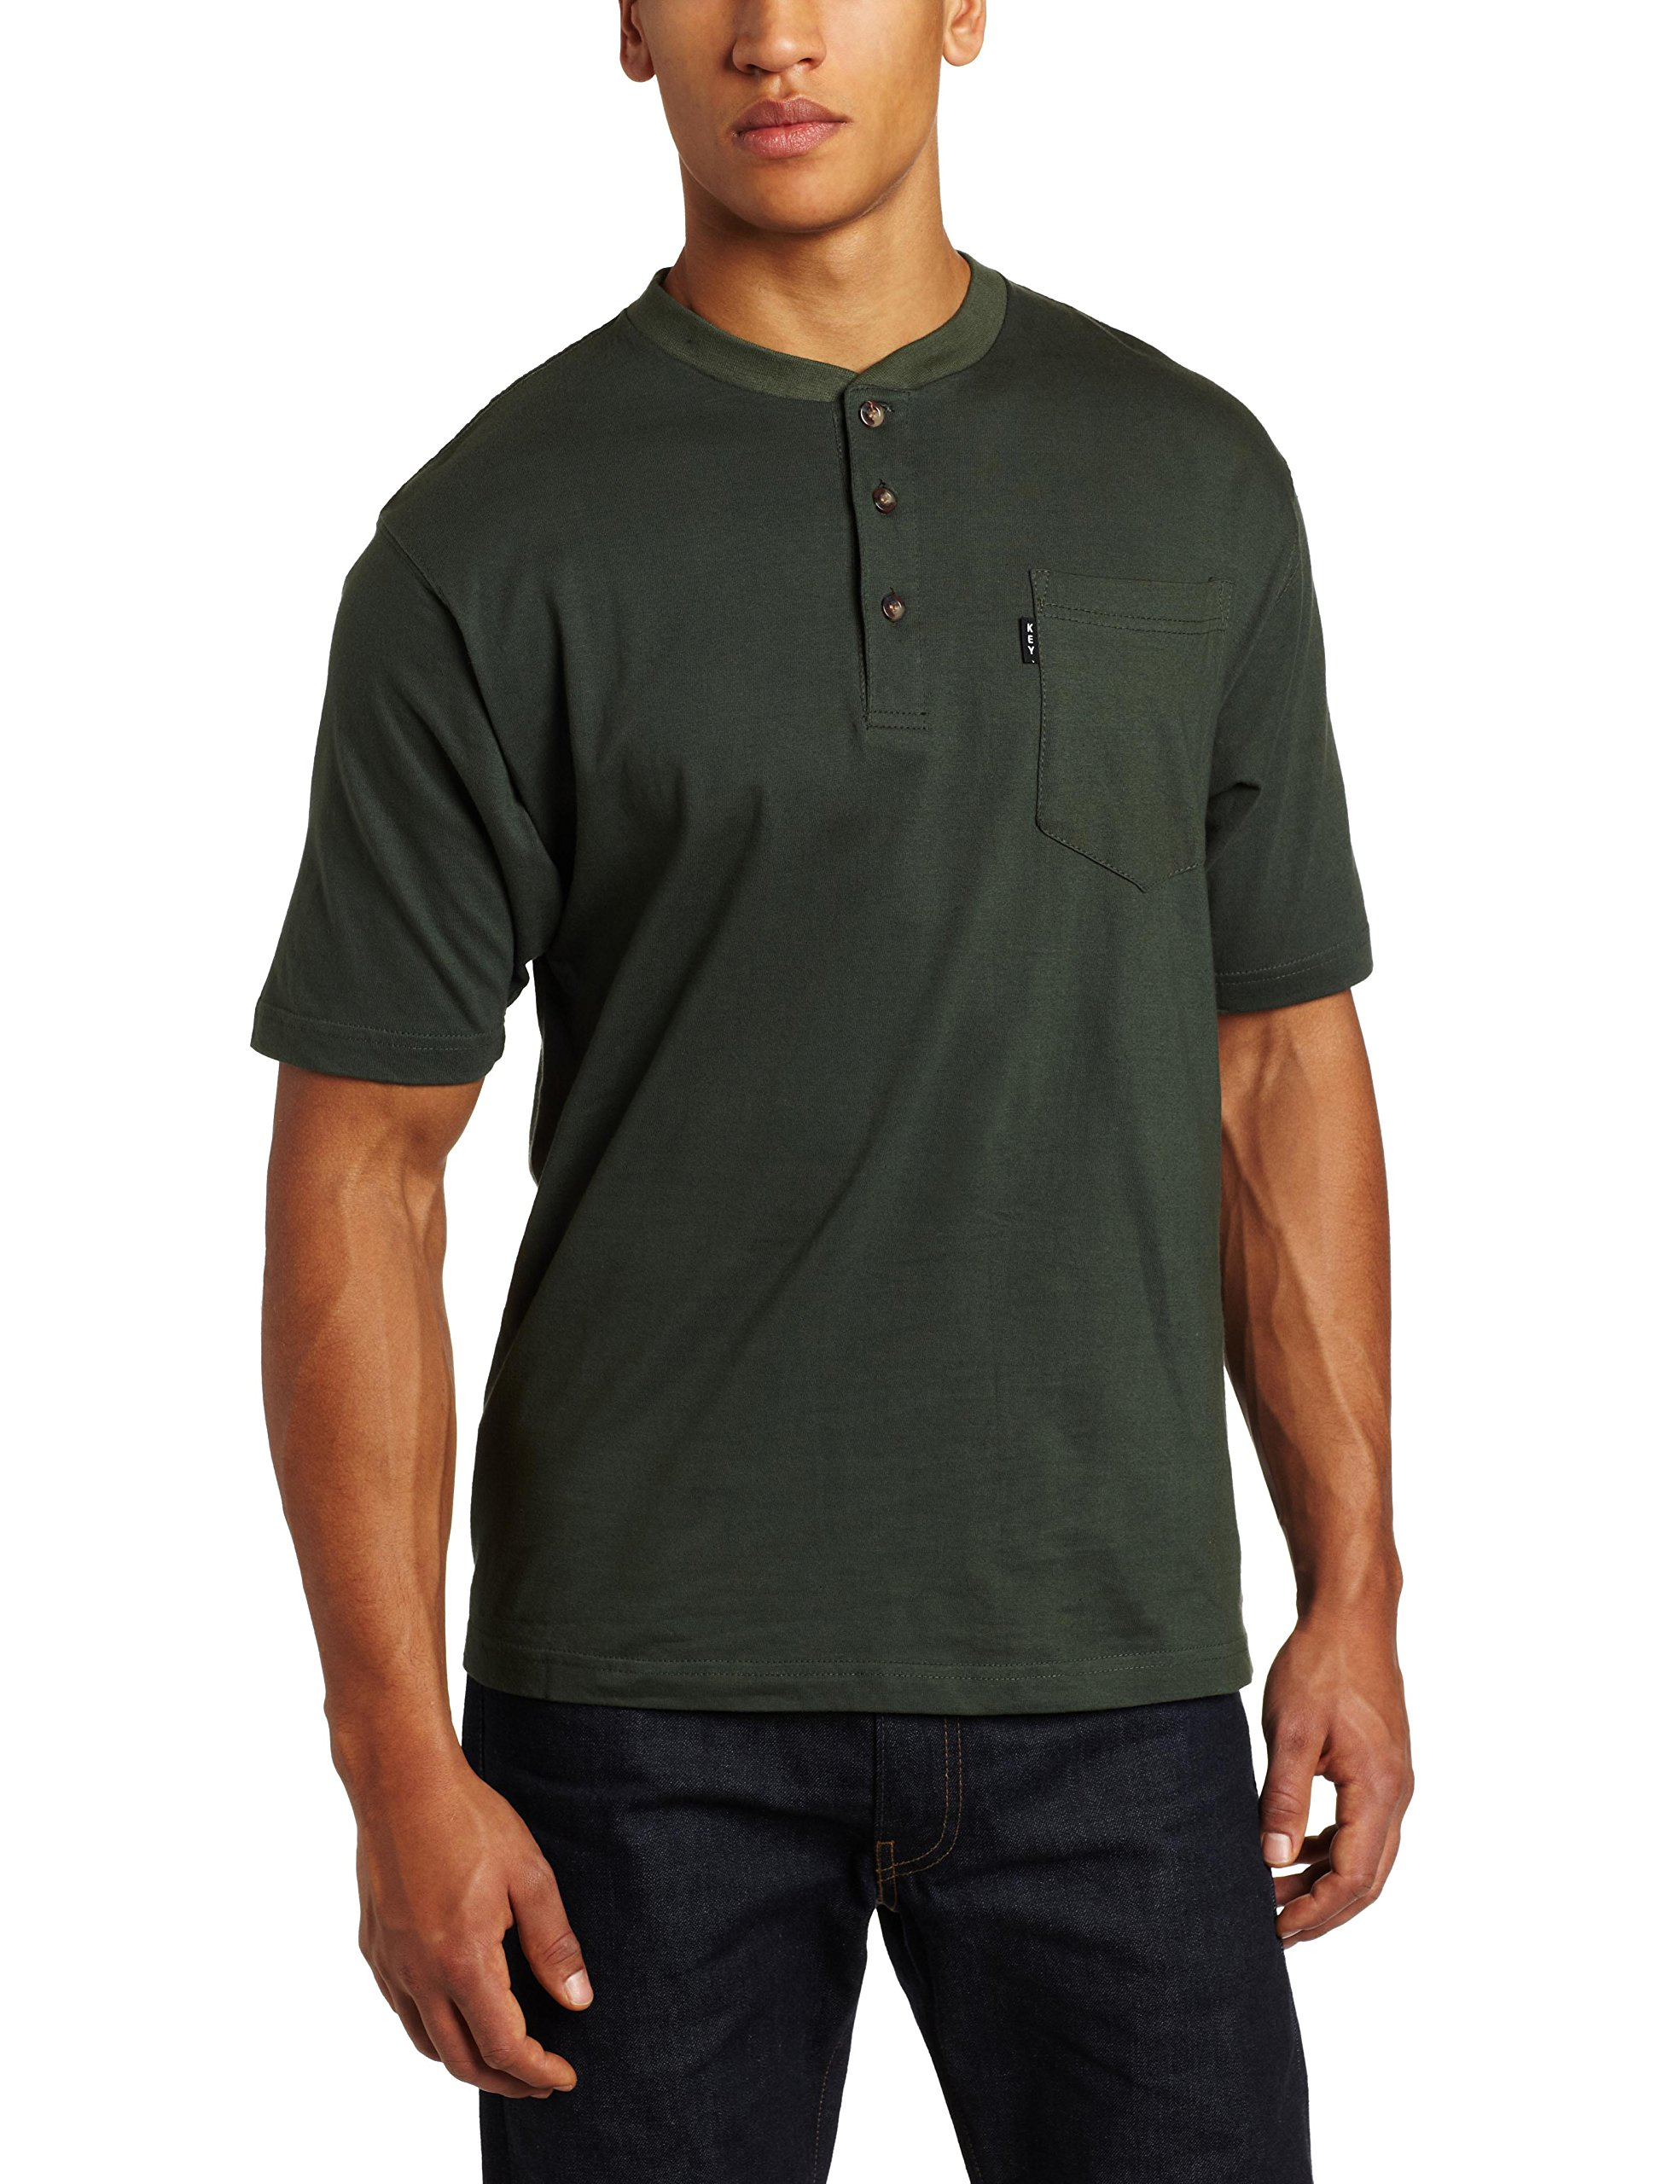 Key Apparel Men's Big-Tall Heavy Weigh Short Sleeve Henley Pocket T, Forest Green, 2X-Large/Tall